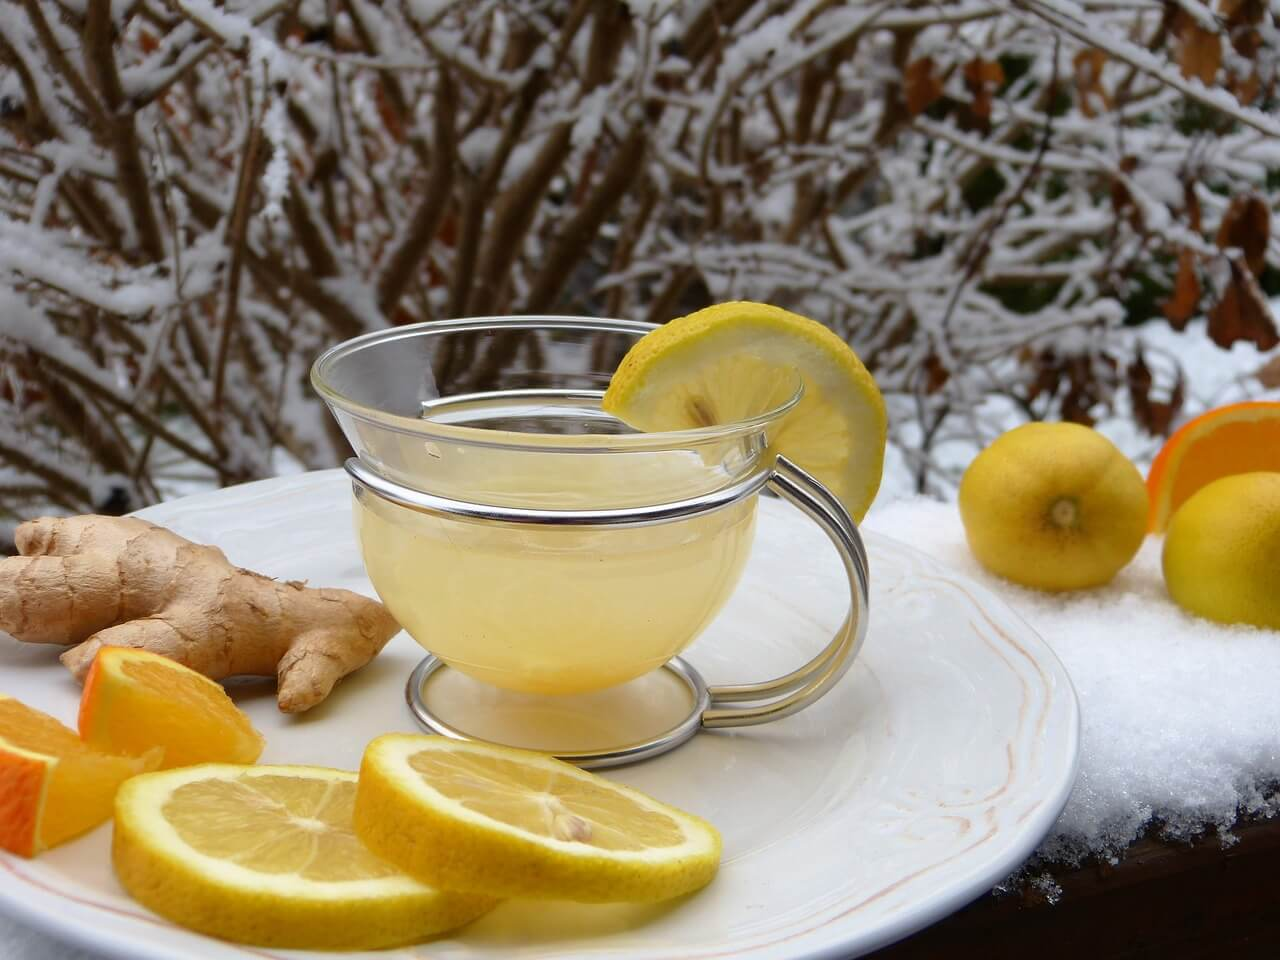 5 Tips to Stay Healthy This Flu Season